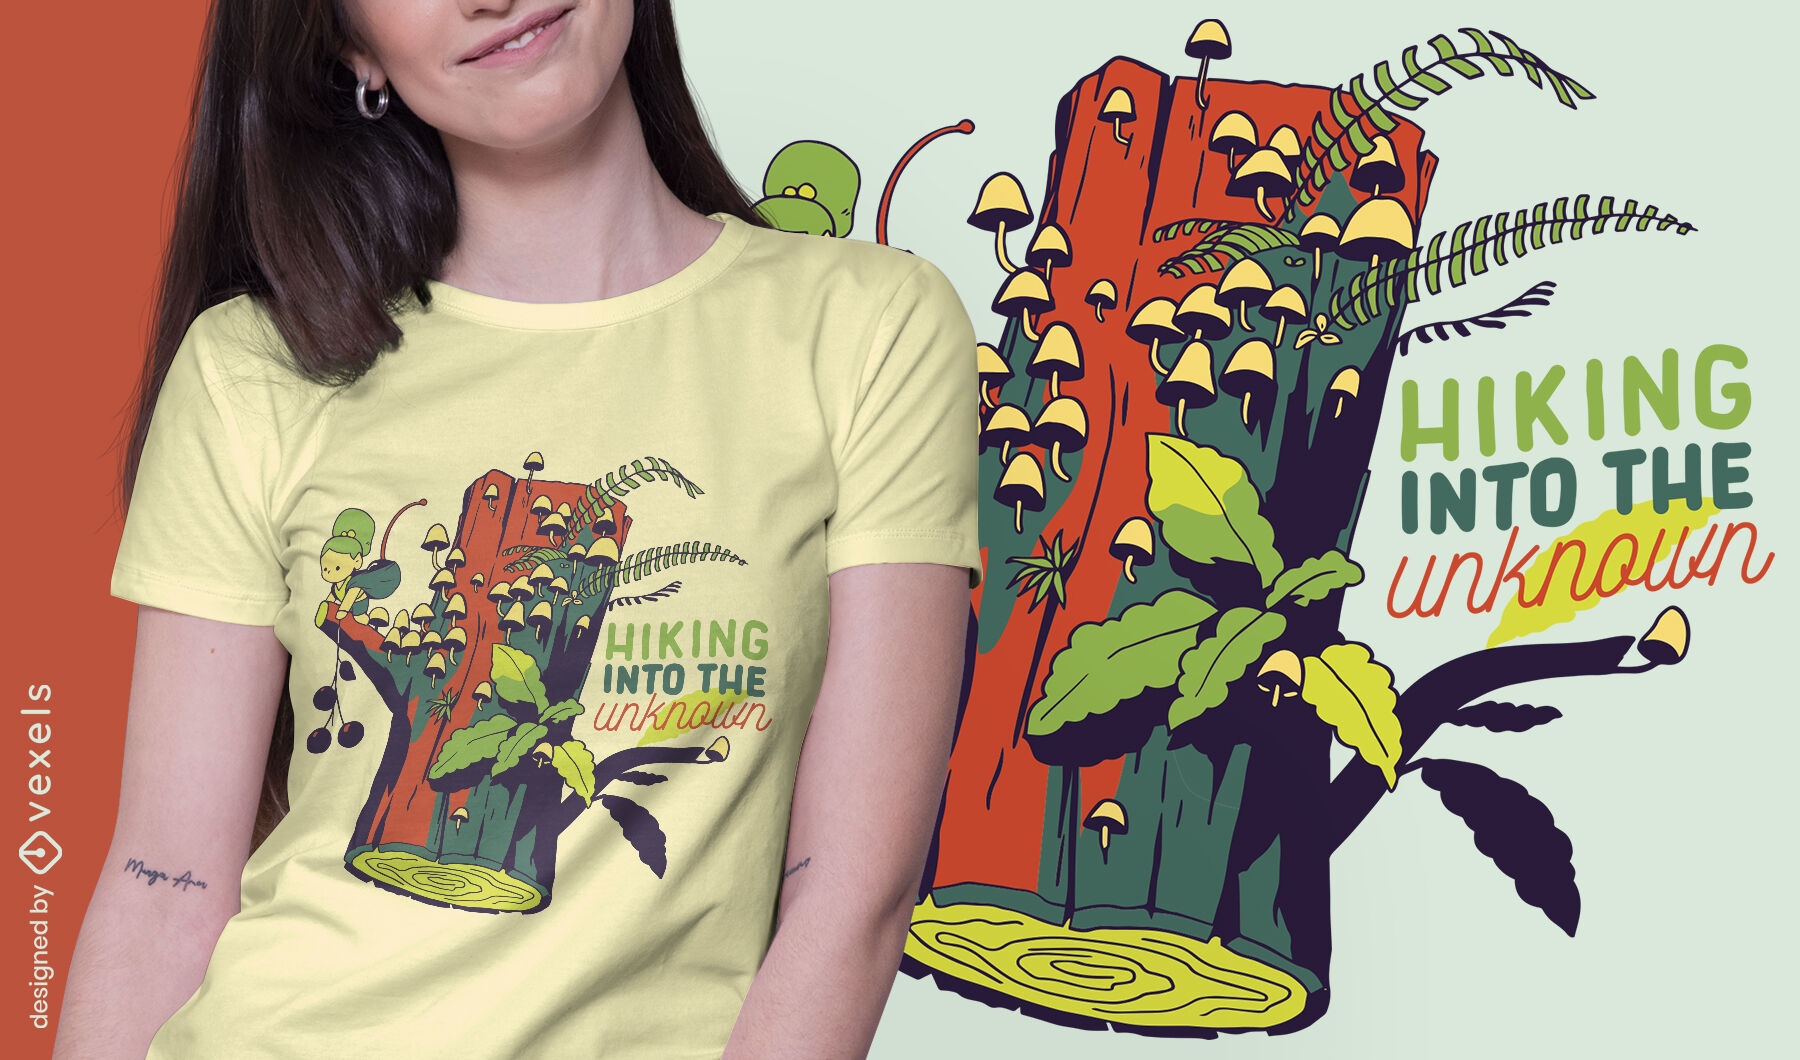 Tiny girl in log with hiking quote t-shirt design